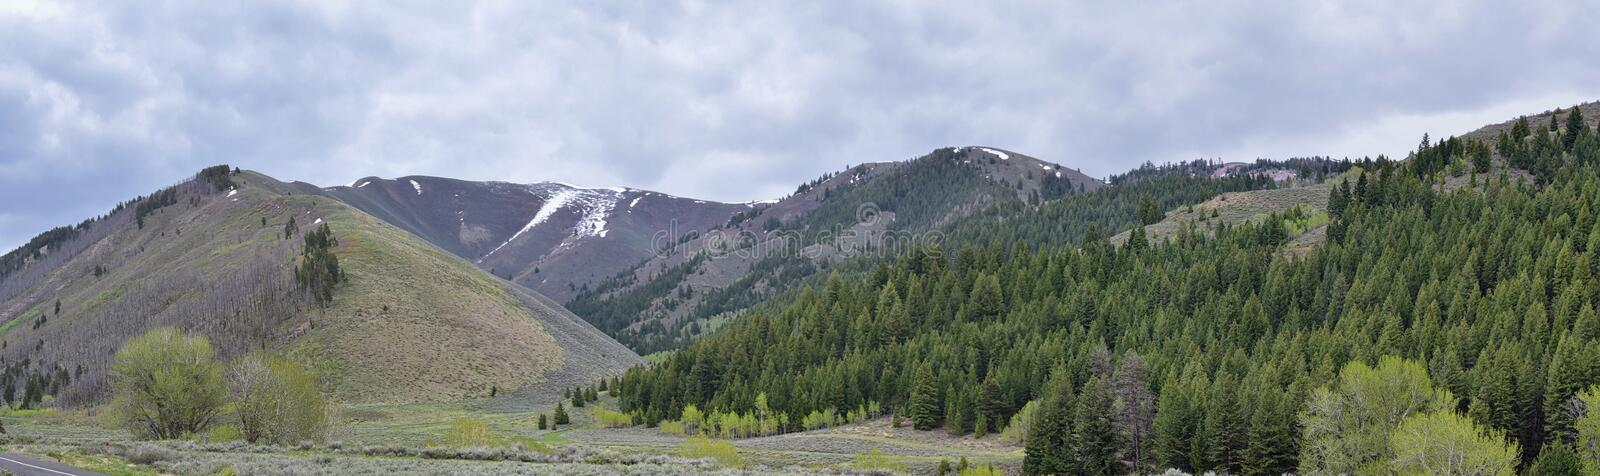 Sun Valley, Badger Canyon in Sawtooth Mountains National Forest Landscape panorama views from Trail Creek Road in Idaho. United States stock photos